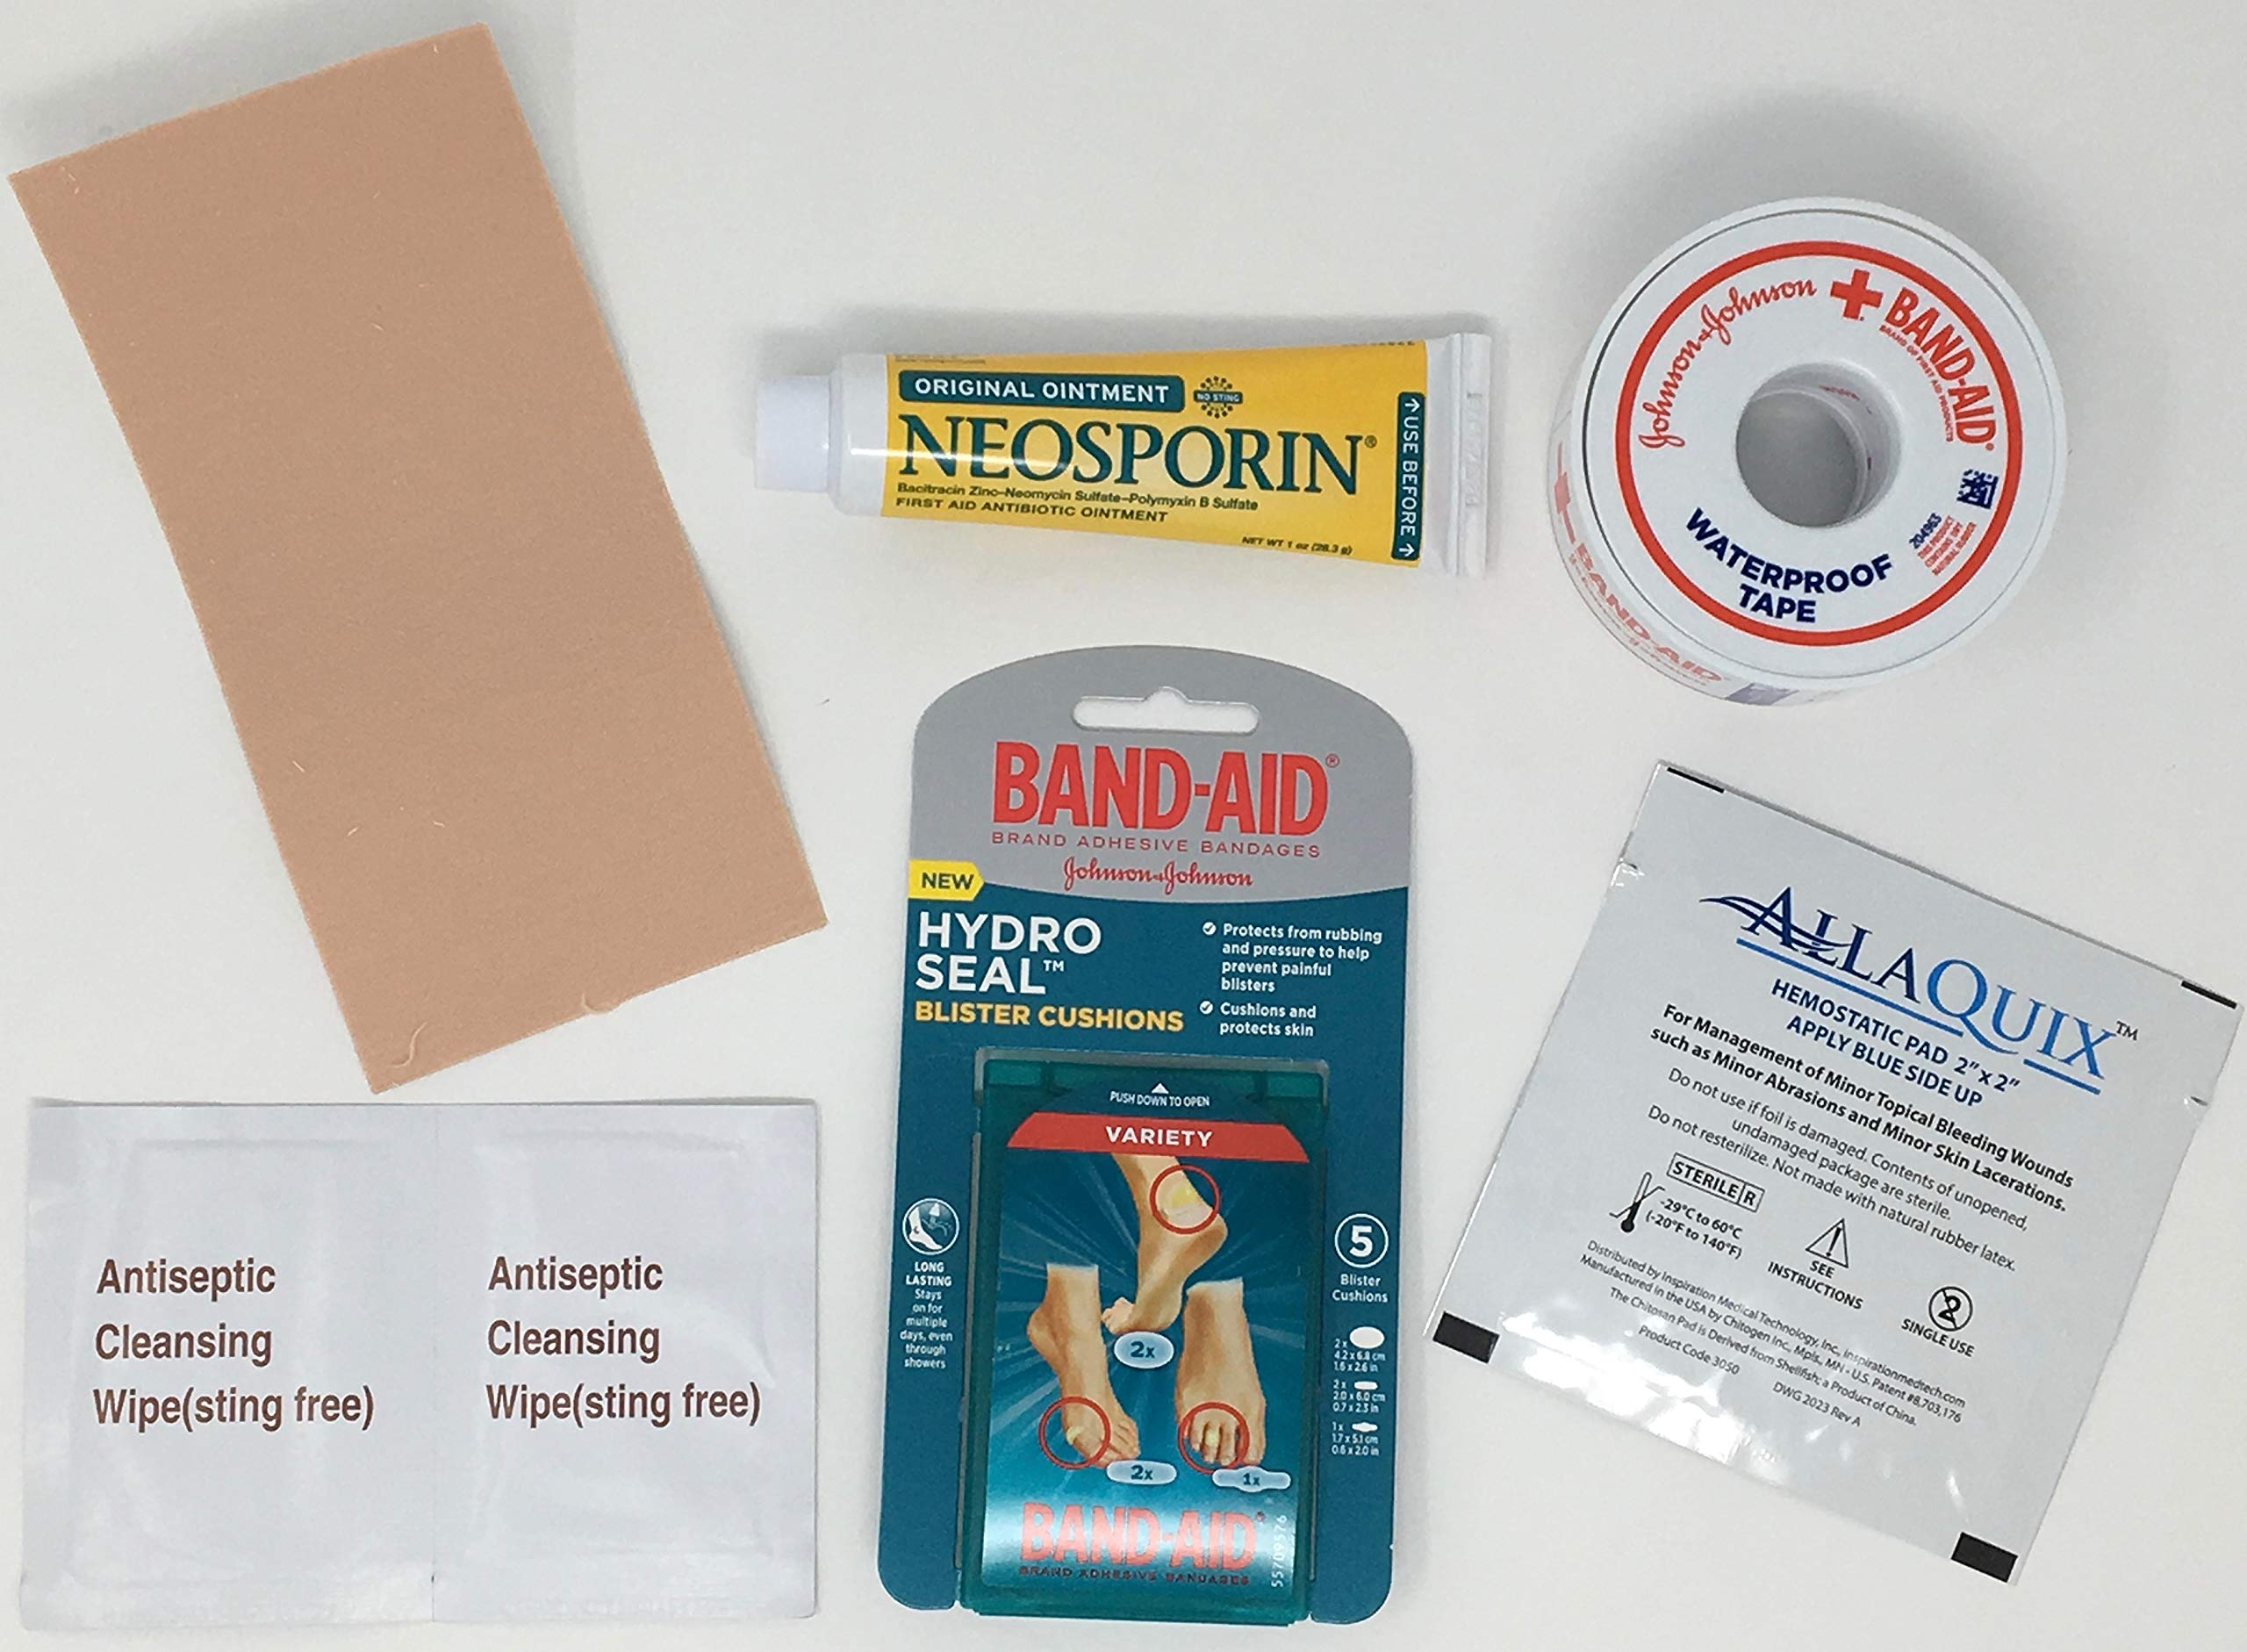 Blister Care Pack (Contains Blister Bandages, Moleskin, Antibiotic Ointment, AllaQuix, and Much More)